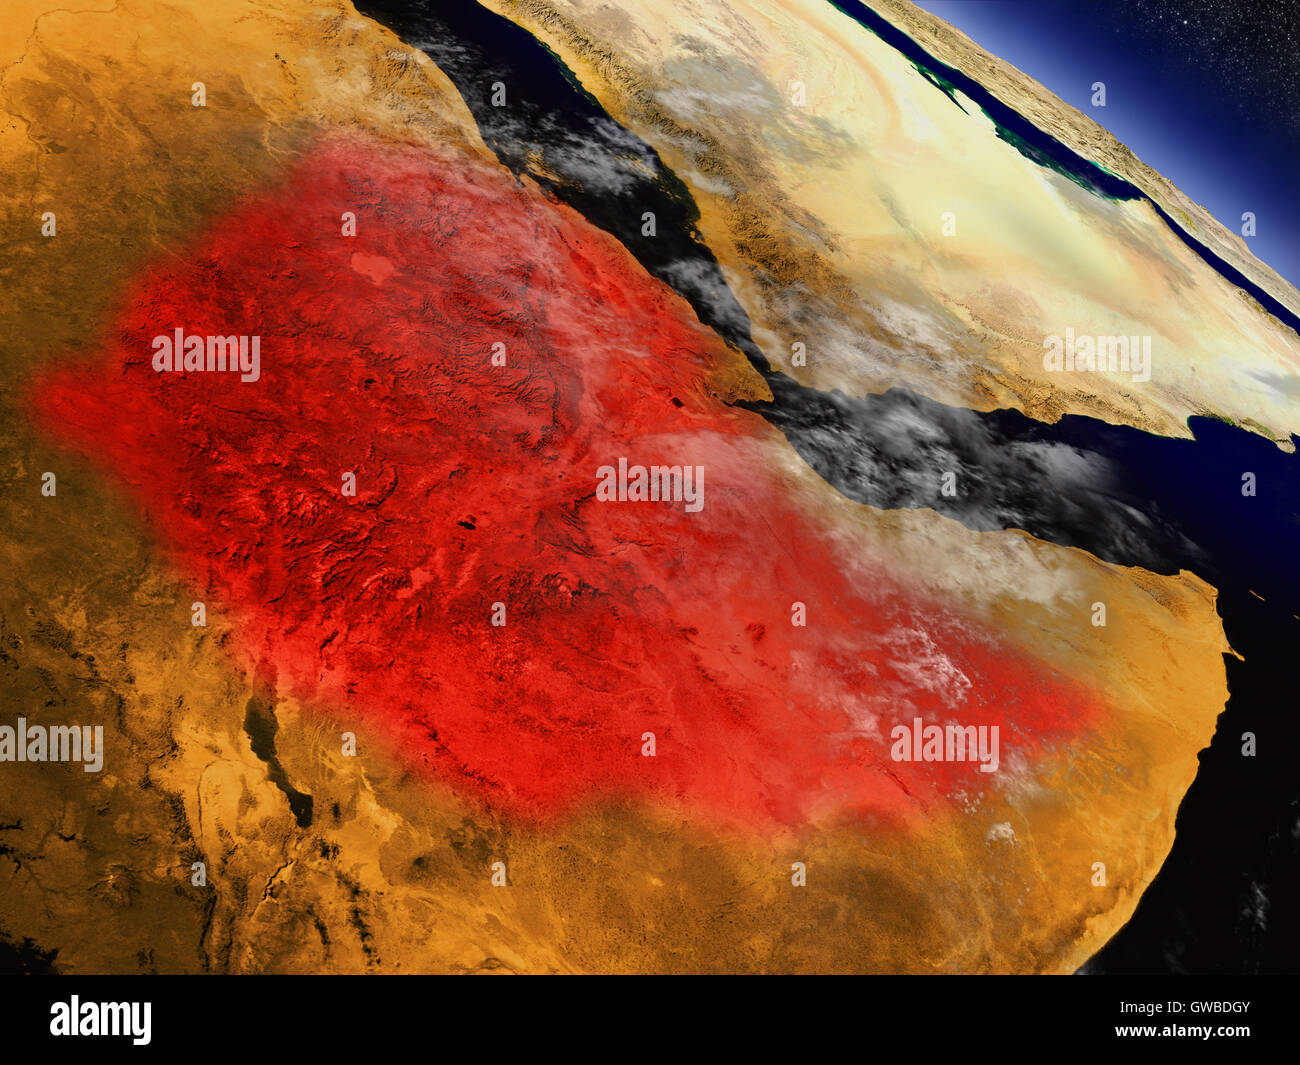 Ethiopia highlighted in red as seen from Earth's orbit in space. 3D illustration with highly detailed planet surface. Stock Photo